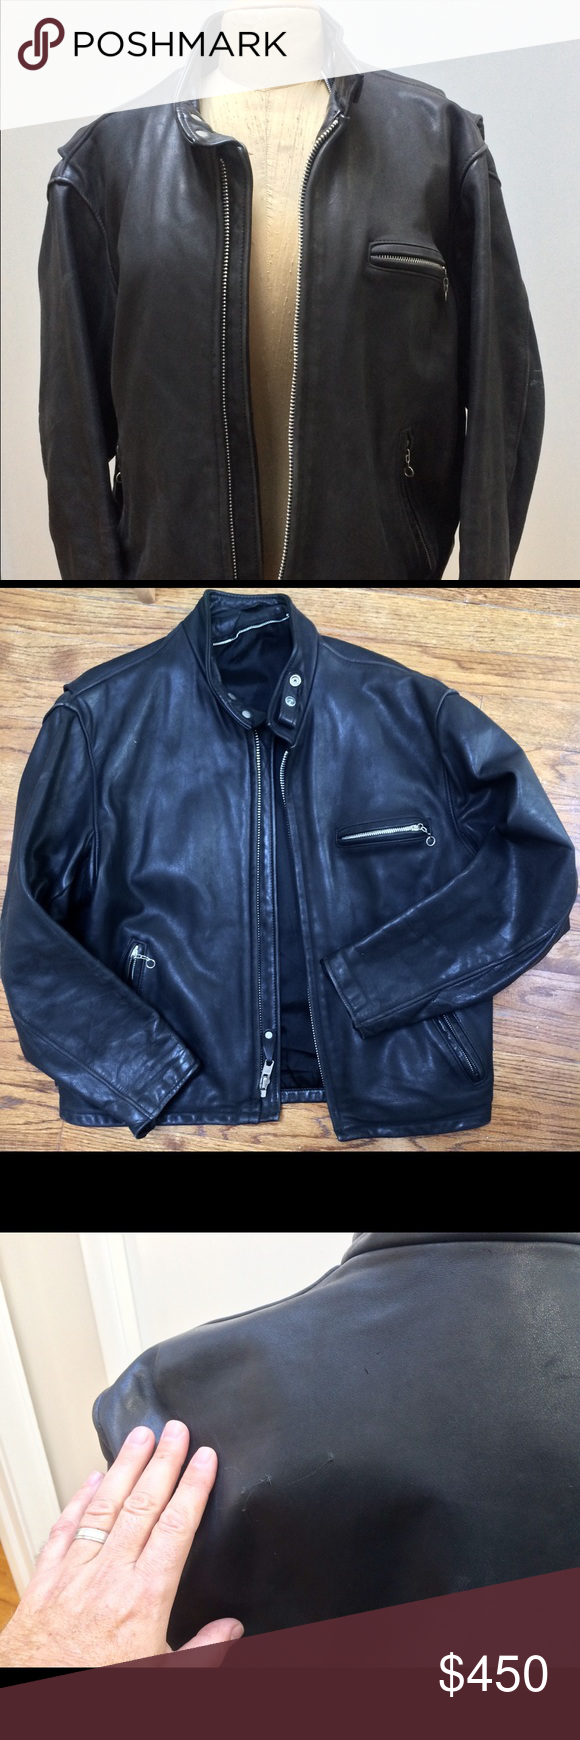 Men S Leather Motorcycle Jacket Leather Motorcycle Jacket Green Leather Jackets Jackets [ 1740 x 580 Pixel ]